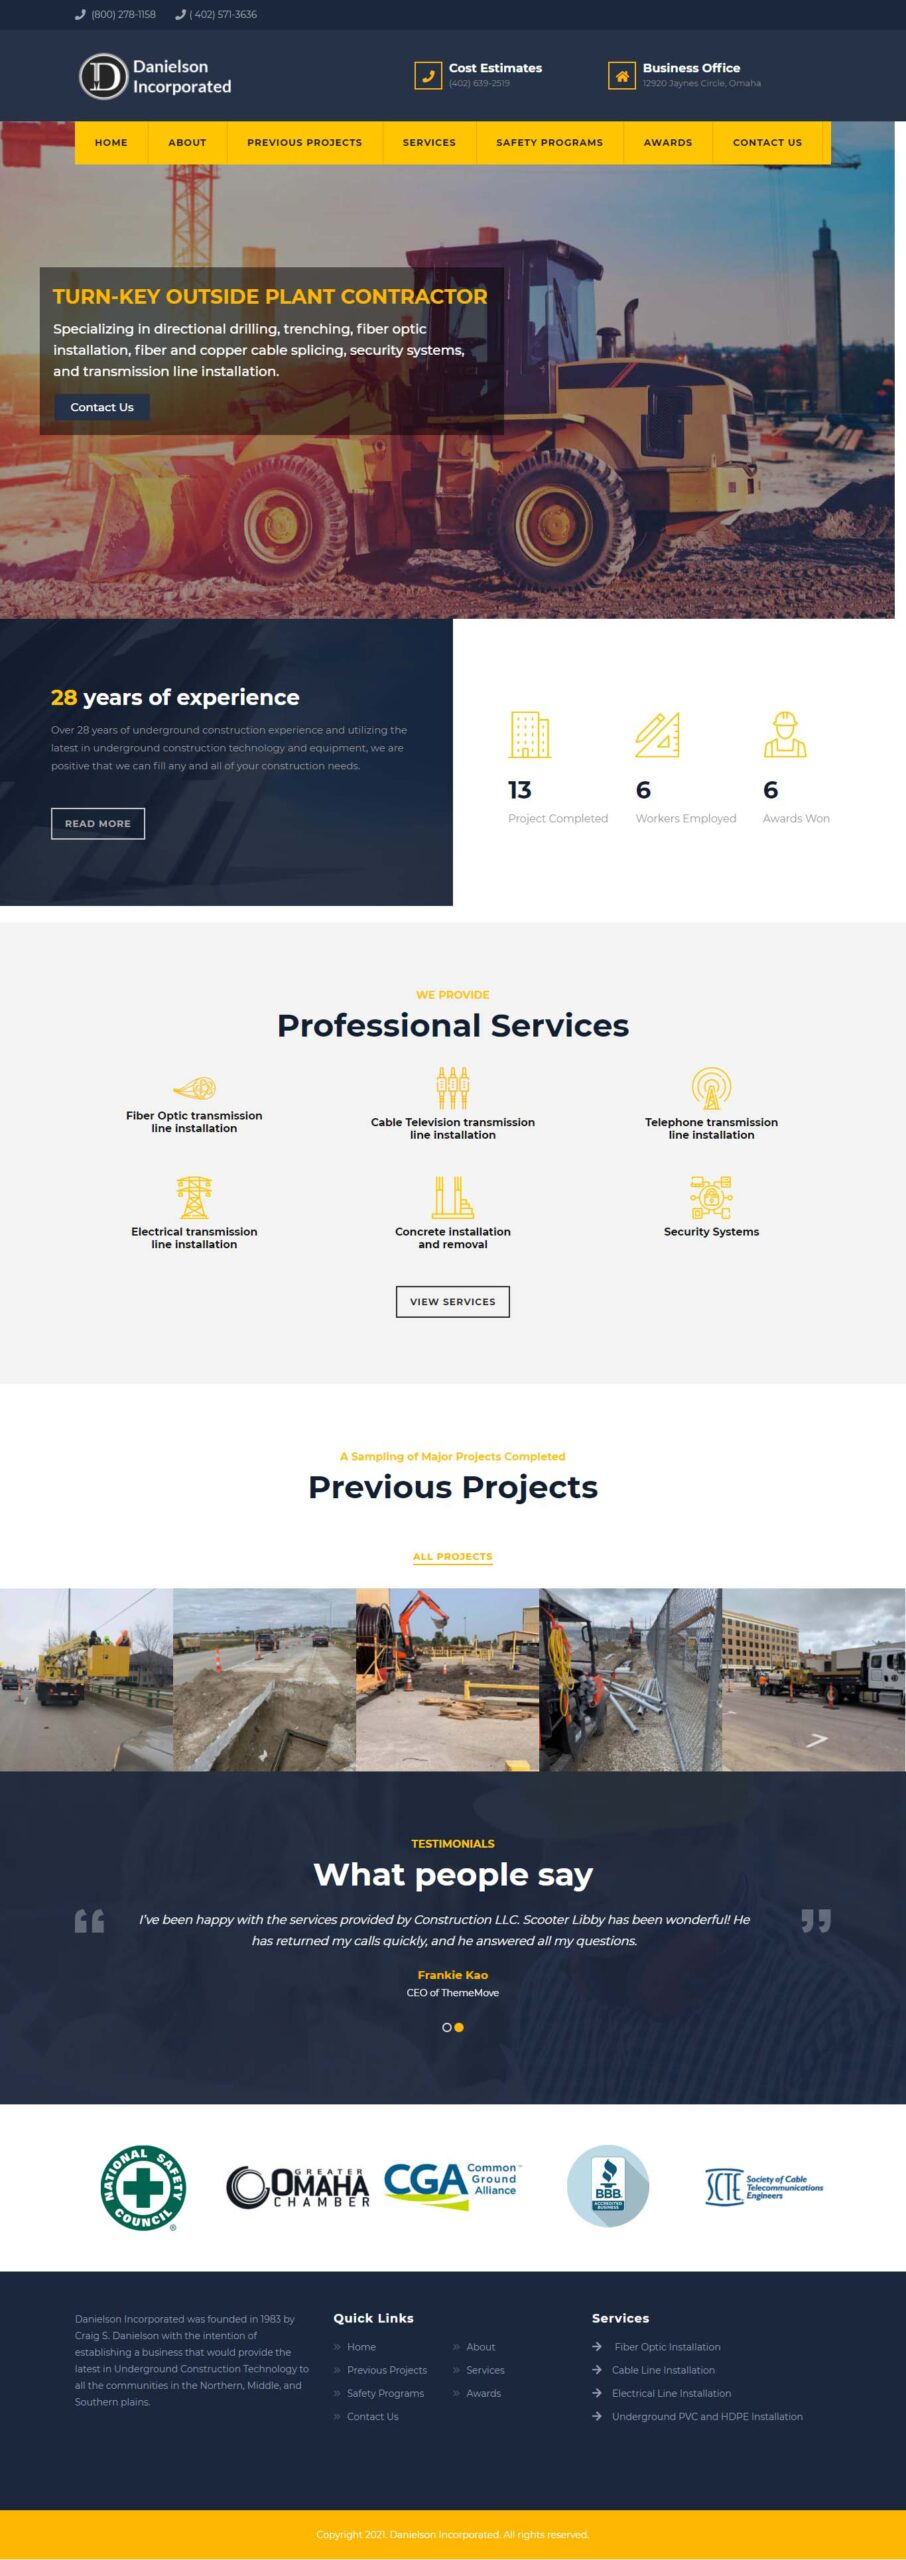 Danielson Incorporated website